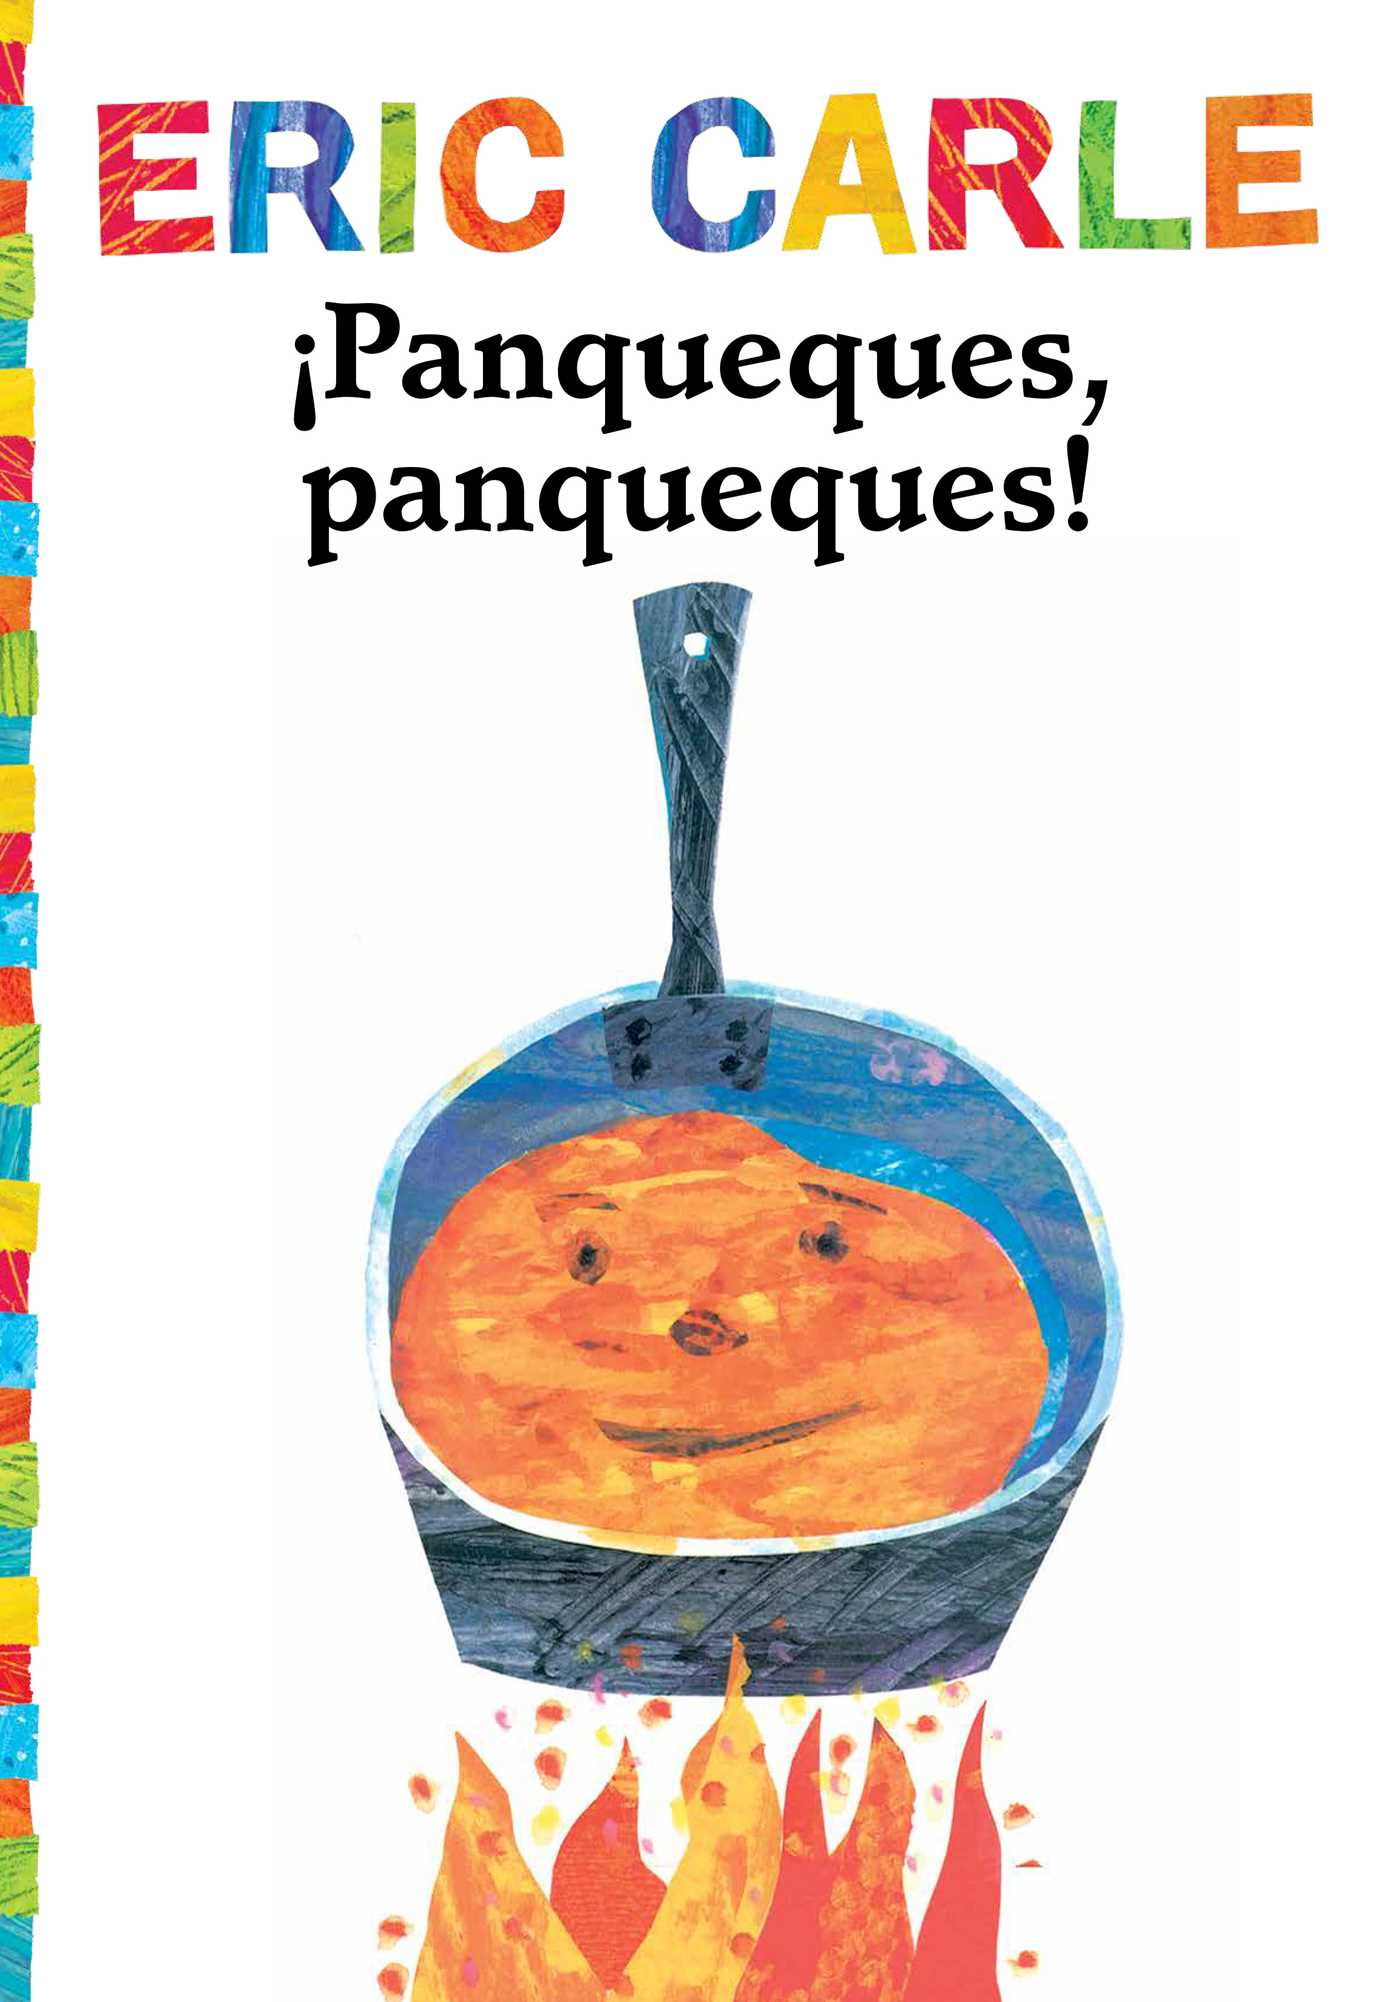 Image result for panqueques panqueques eric carle